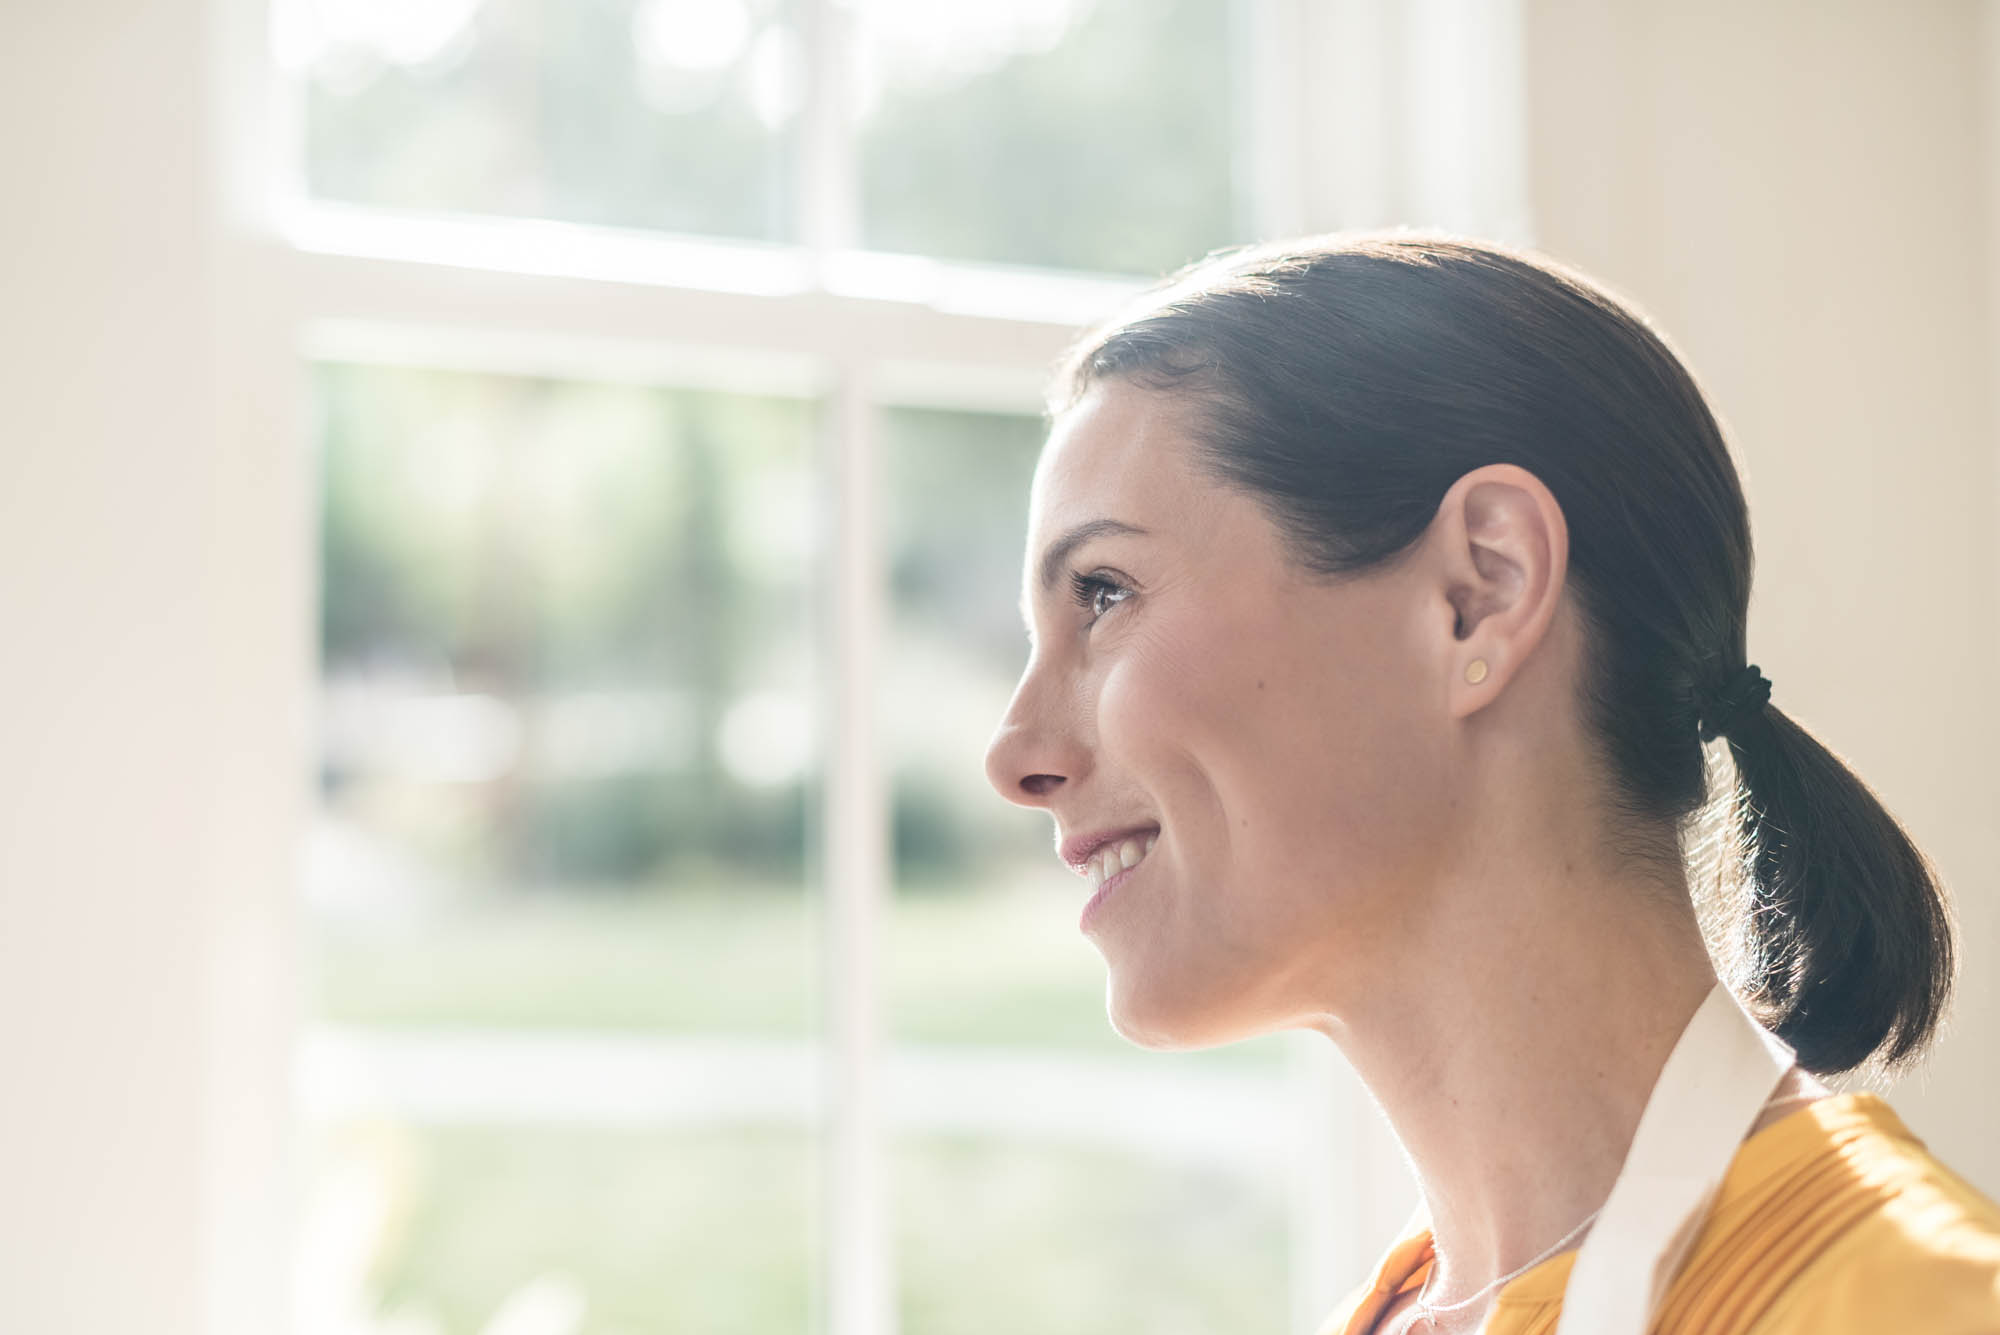 Young woman smiling and looking out of a kitchen window